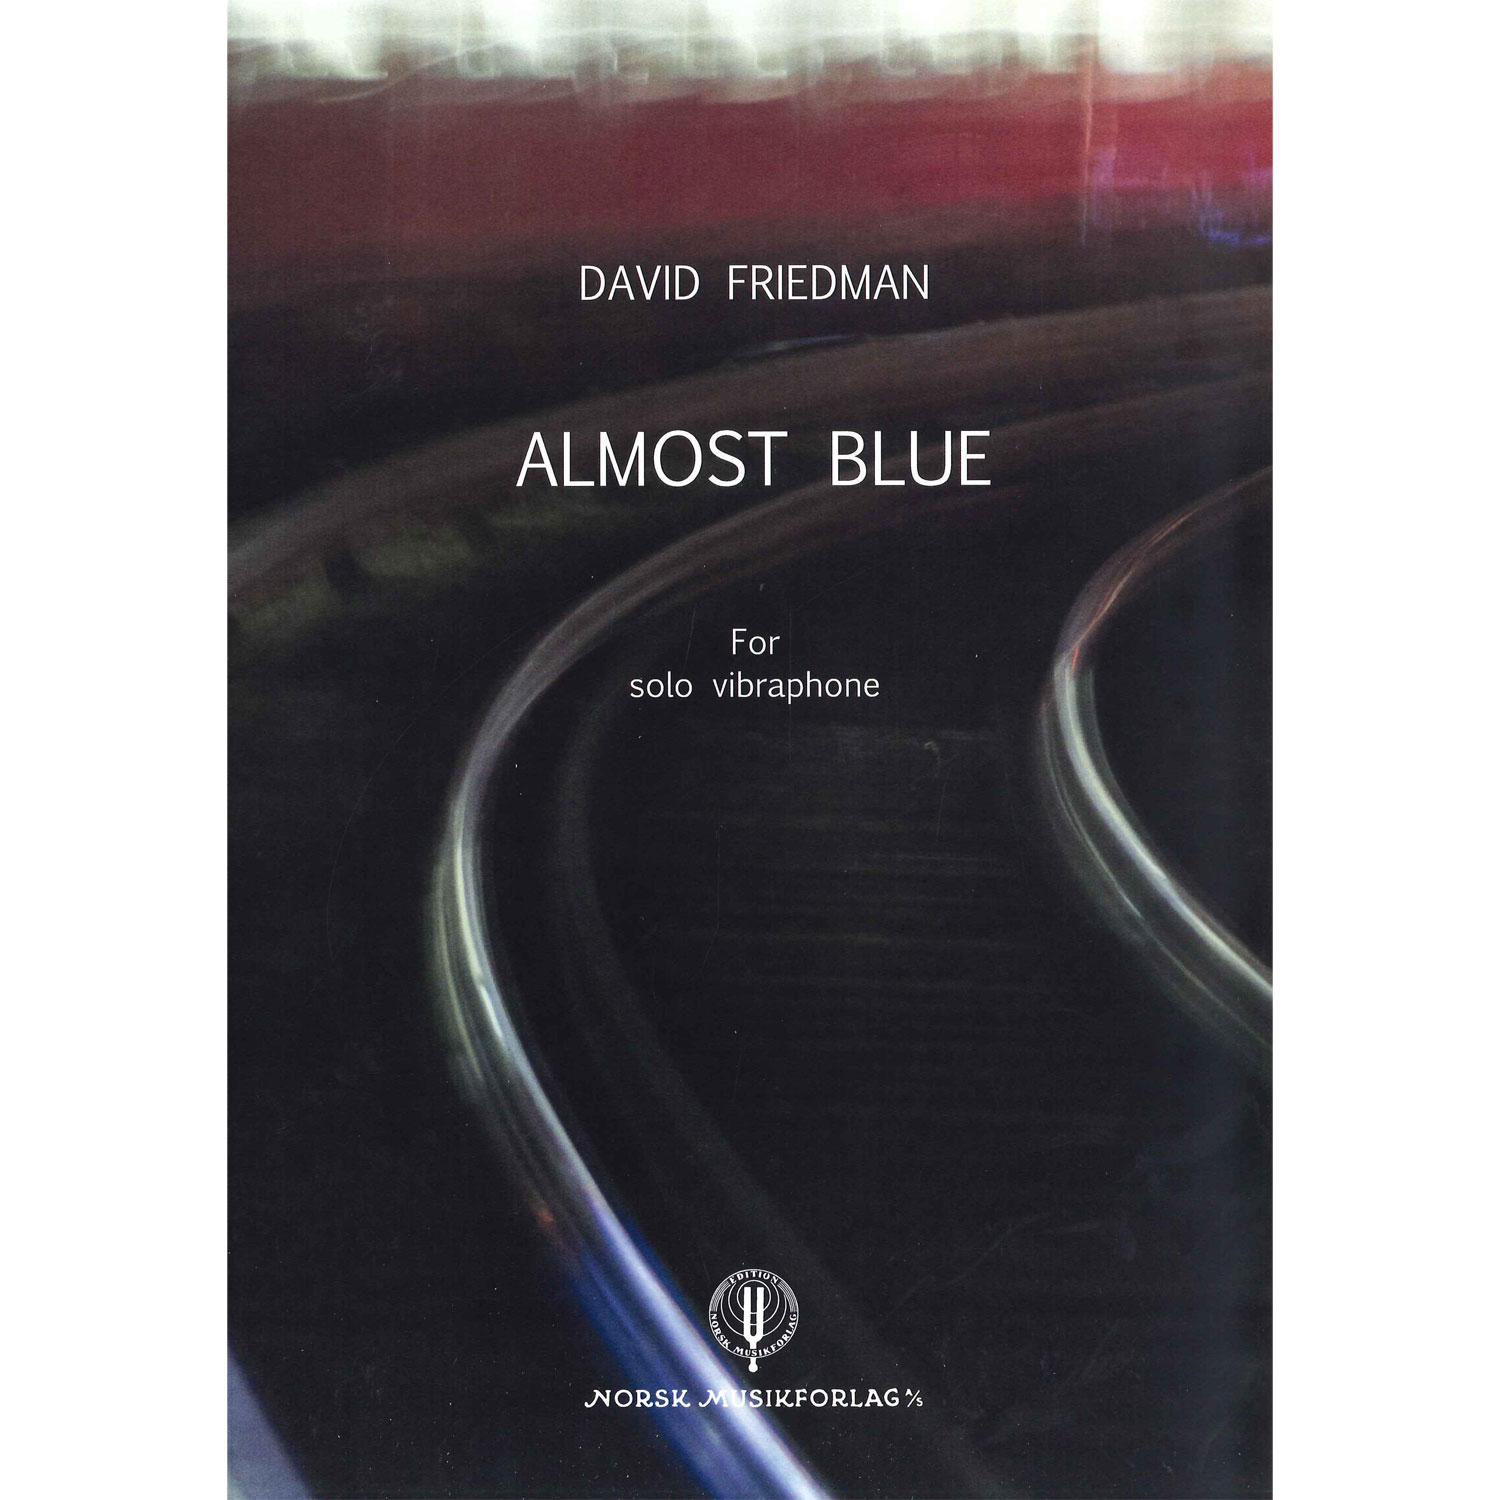 Almost Blue by David Friedman